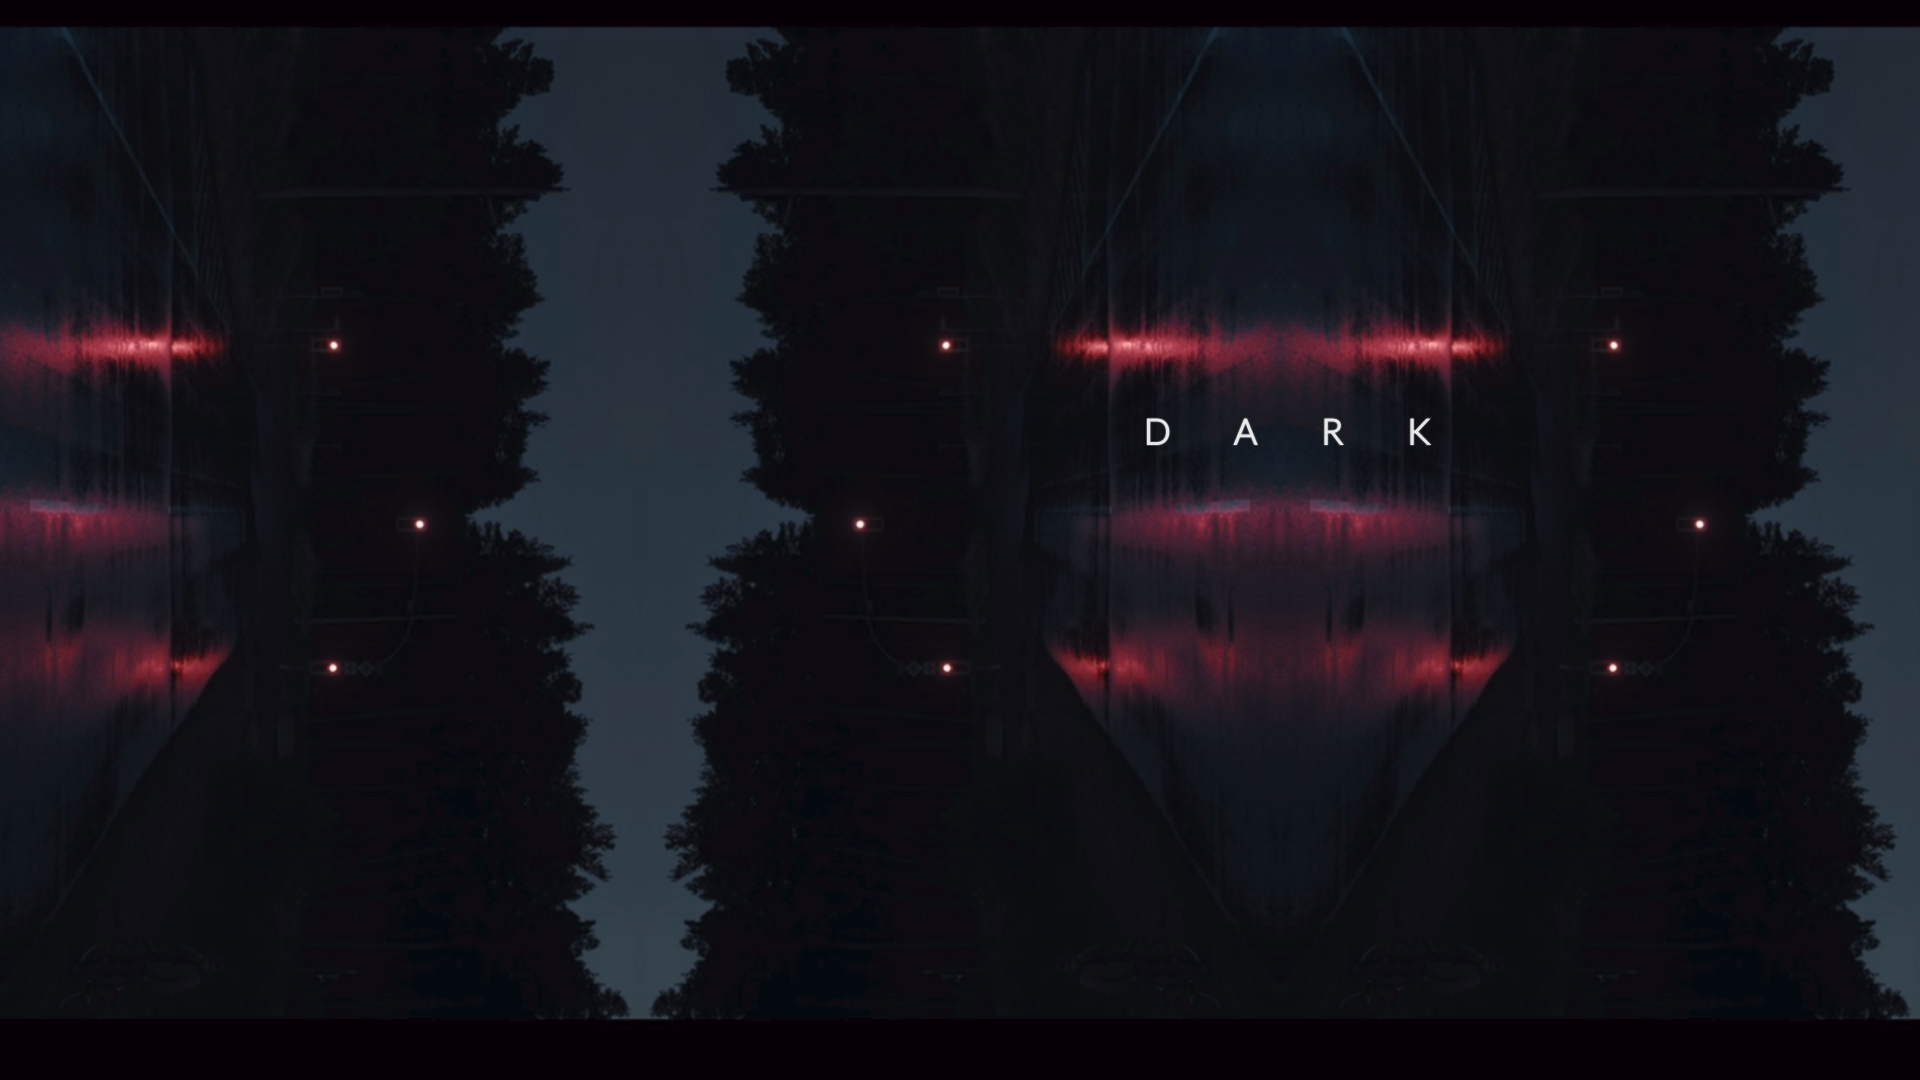 Recreating the Netflix's Dark opening effect in Html & Javascript